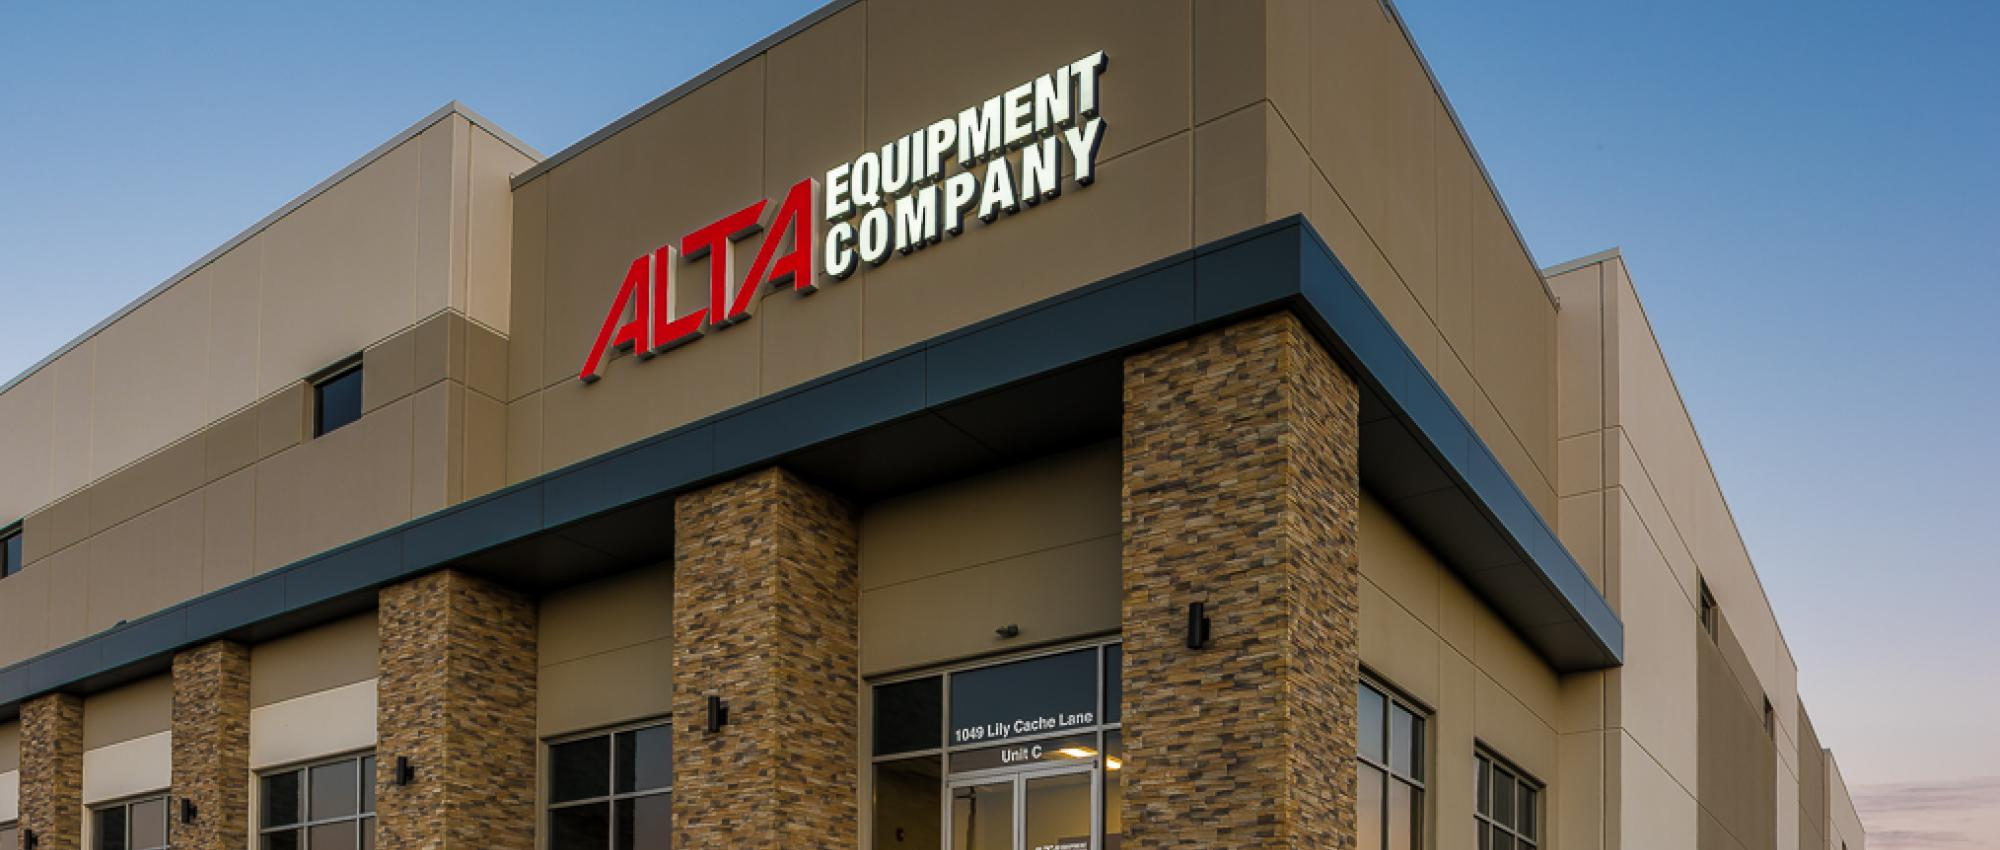 Alta Equipment Company building front